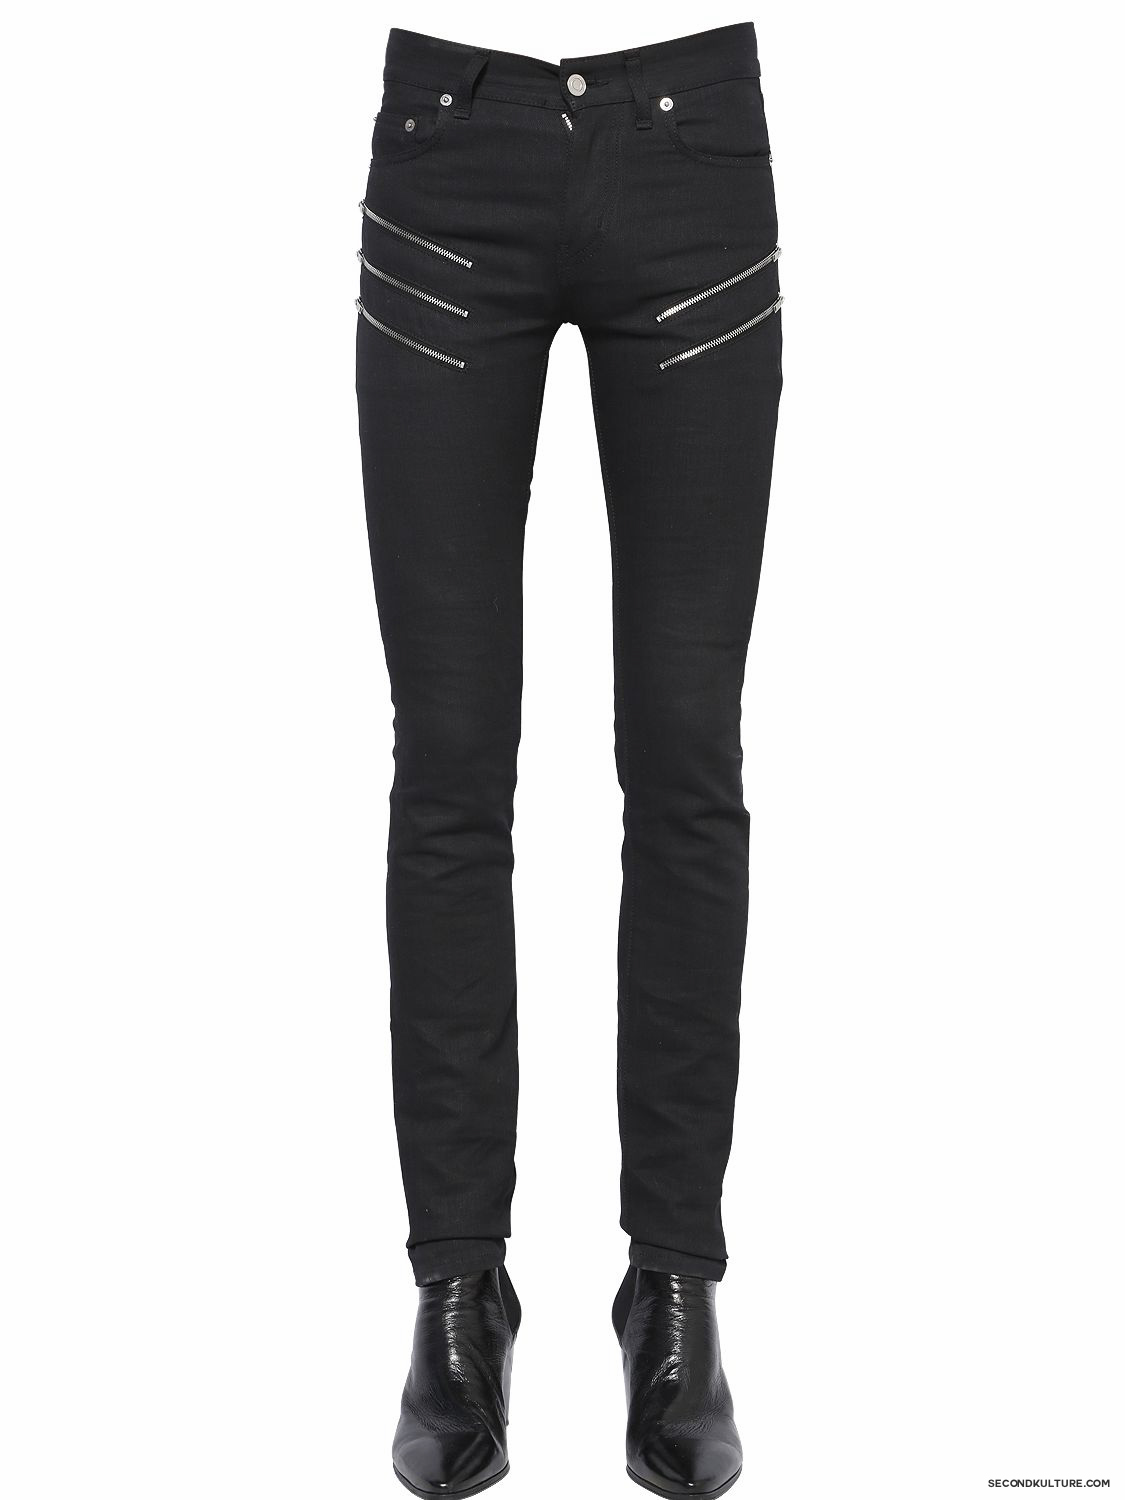 Saint-Laurent-15cm-Black-Zipped-Stretch-Denim-Jeans-Fall-Winter-2015-1